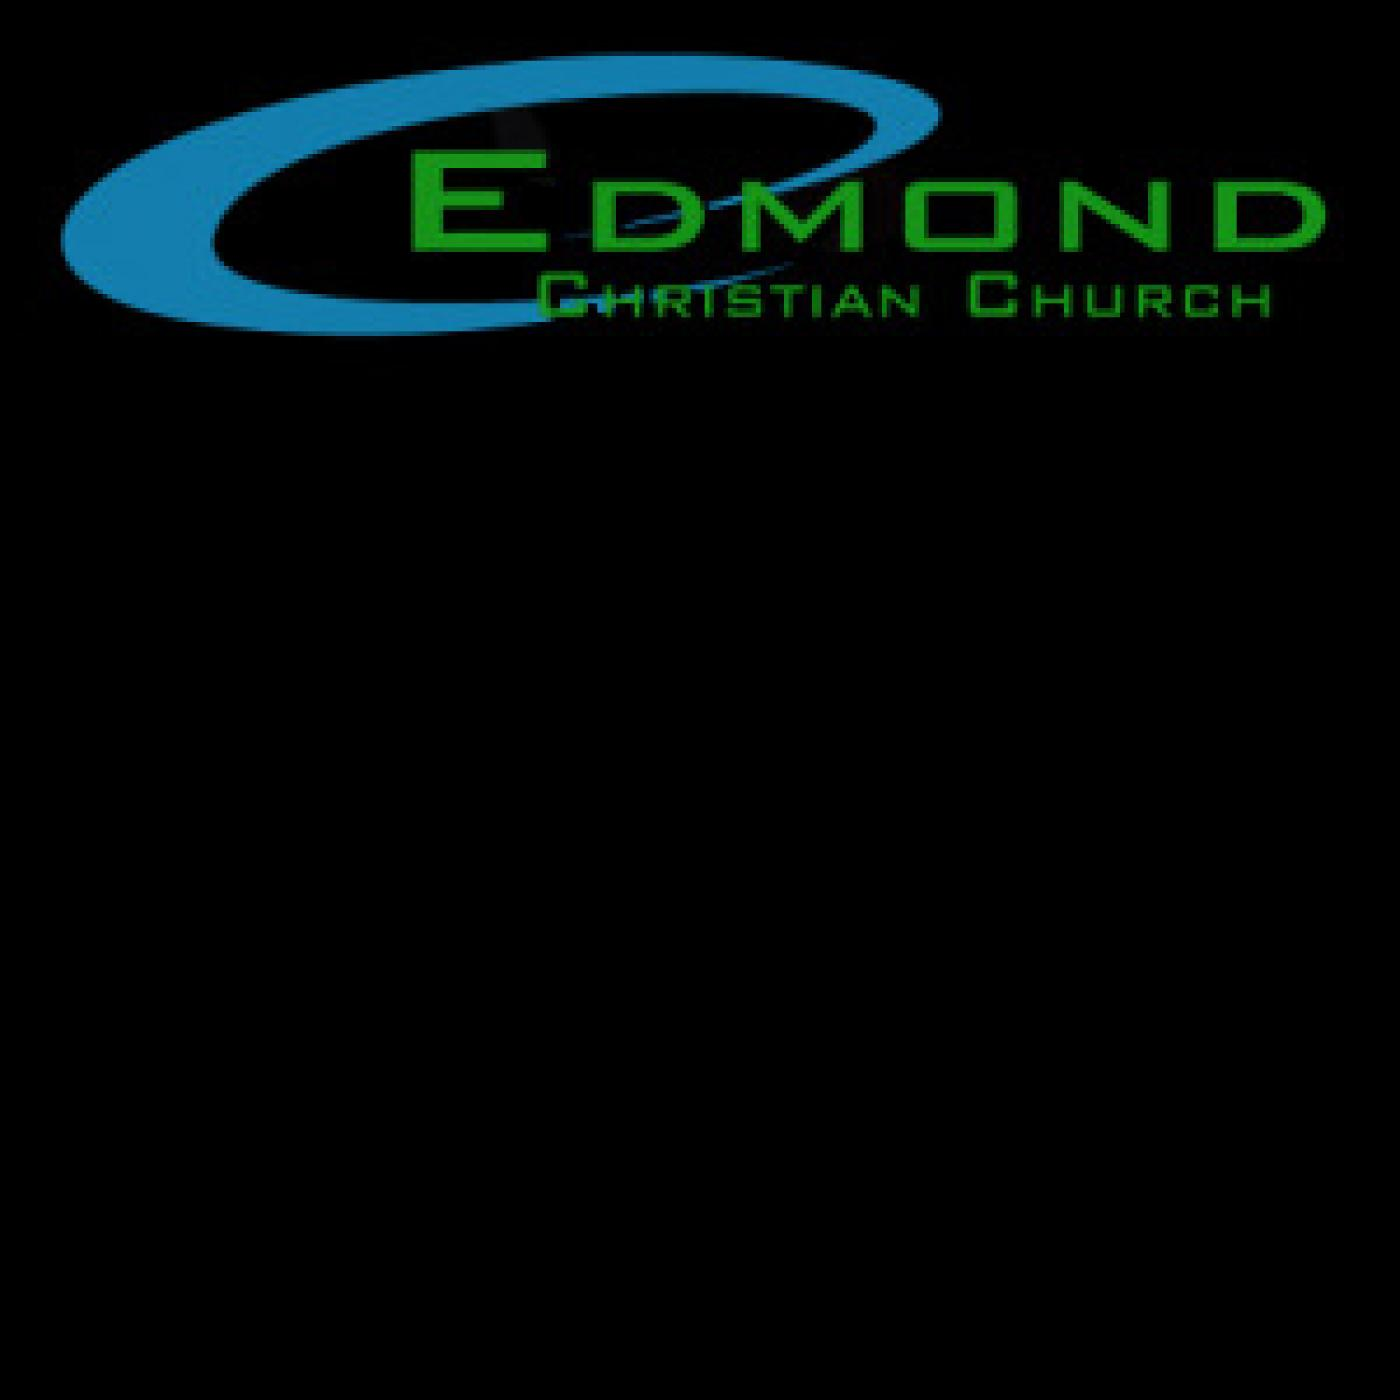 Edmond Christian Church